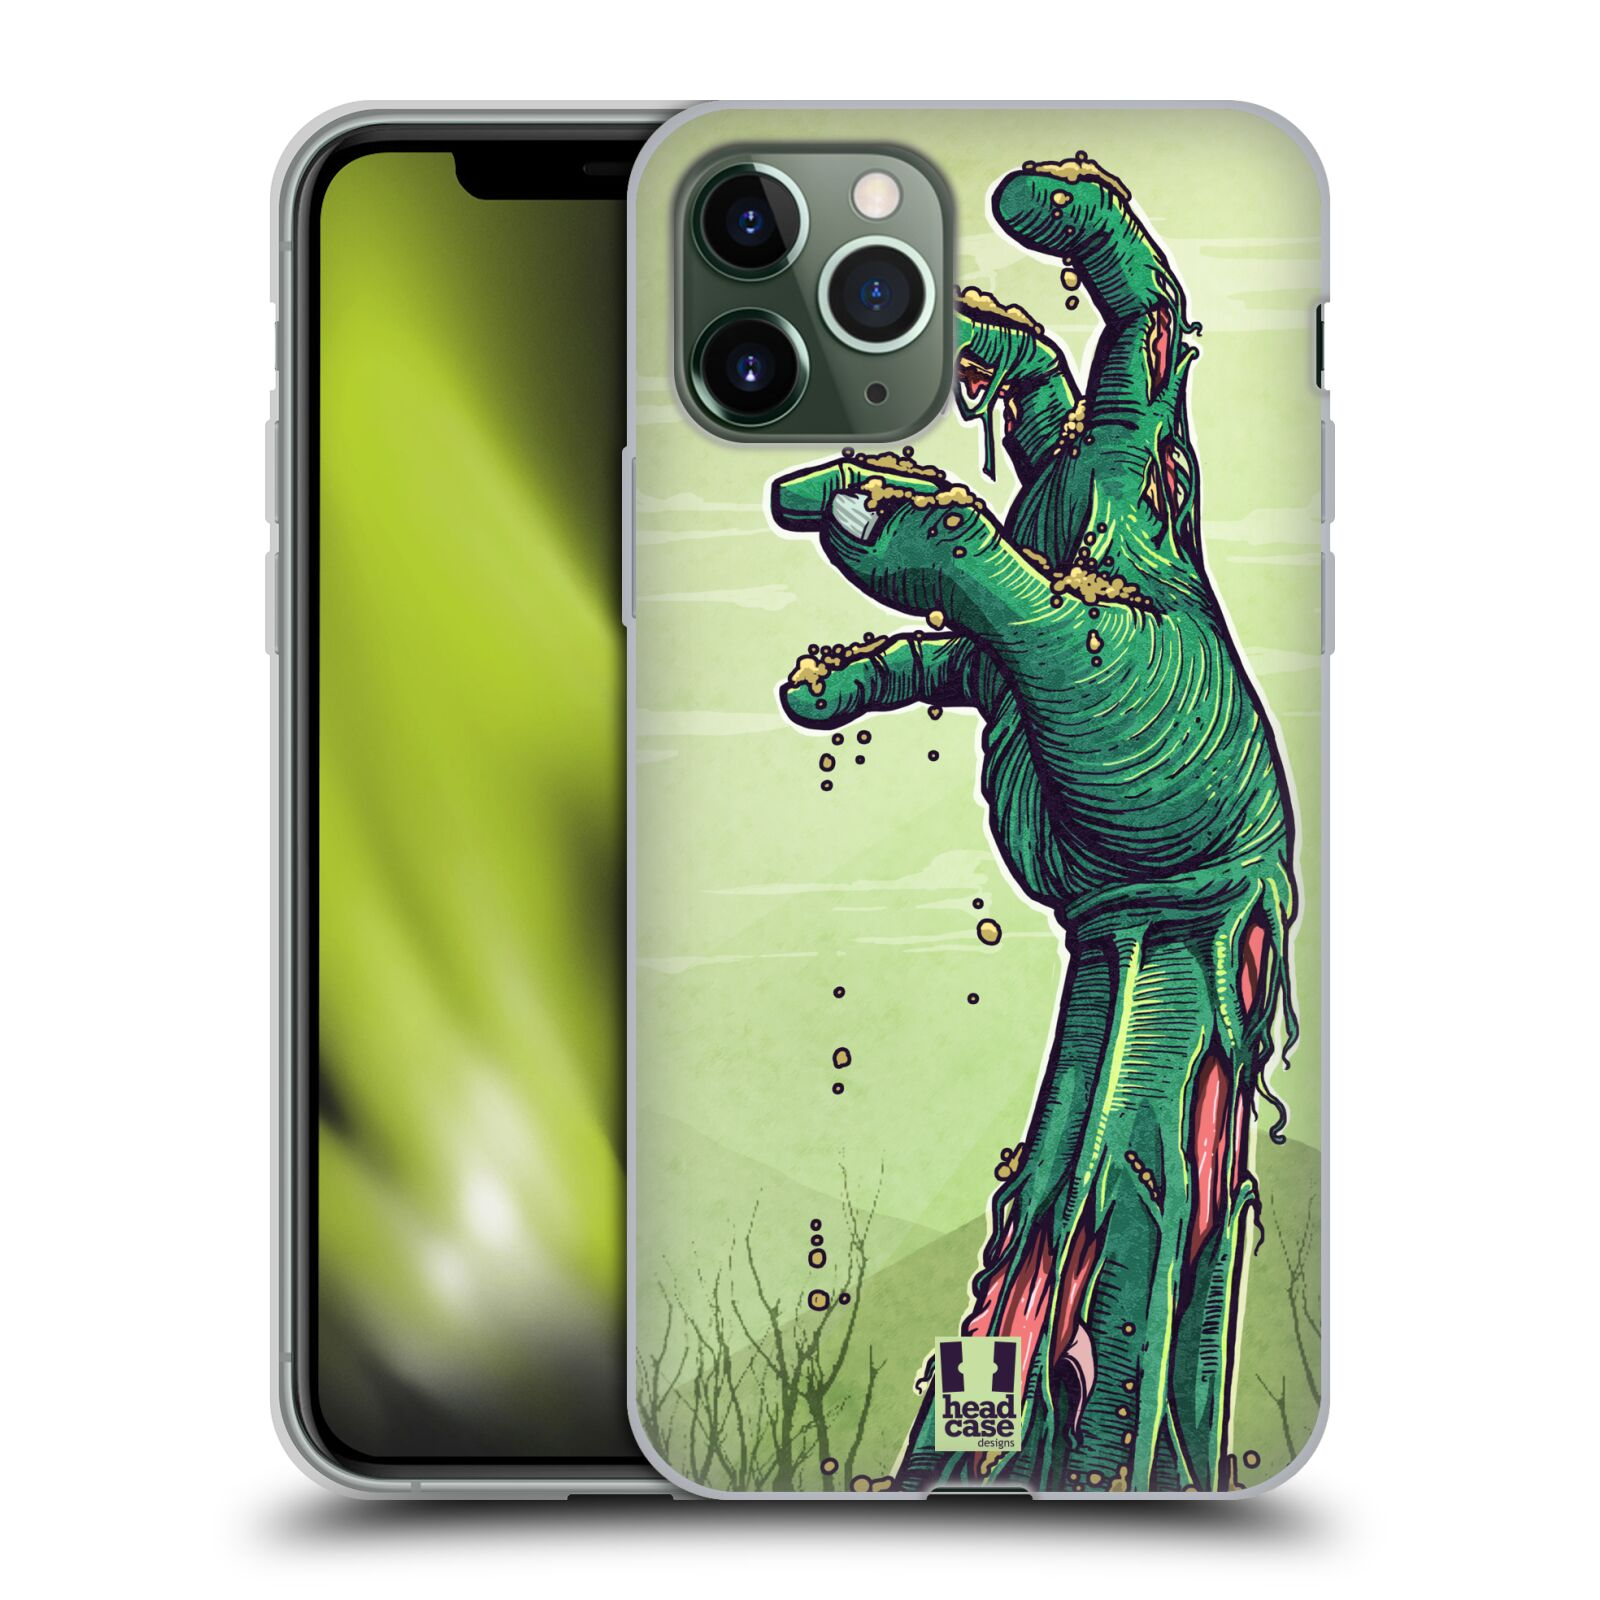 apple iphone x kryt | Silikonové pouzdro na mobil Apple iPhone 11 Pro - Head Case - ZOMBIE RUKA